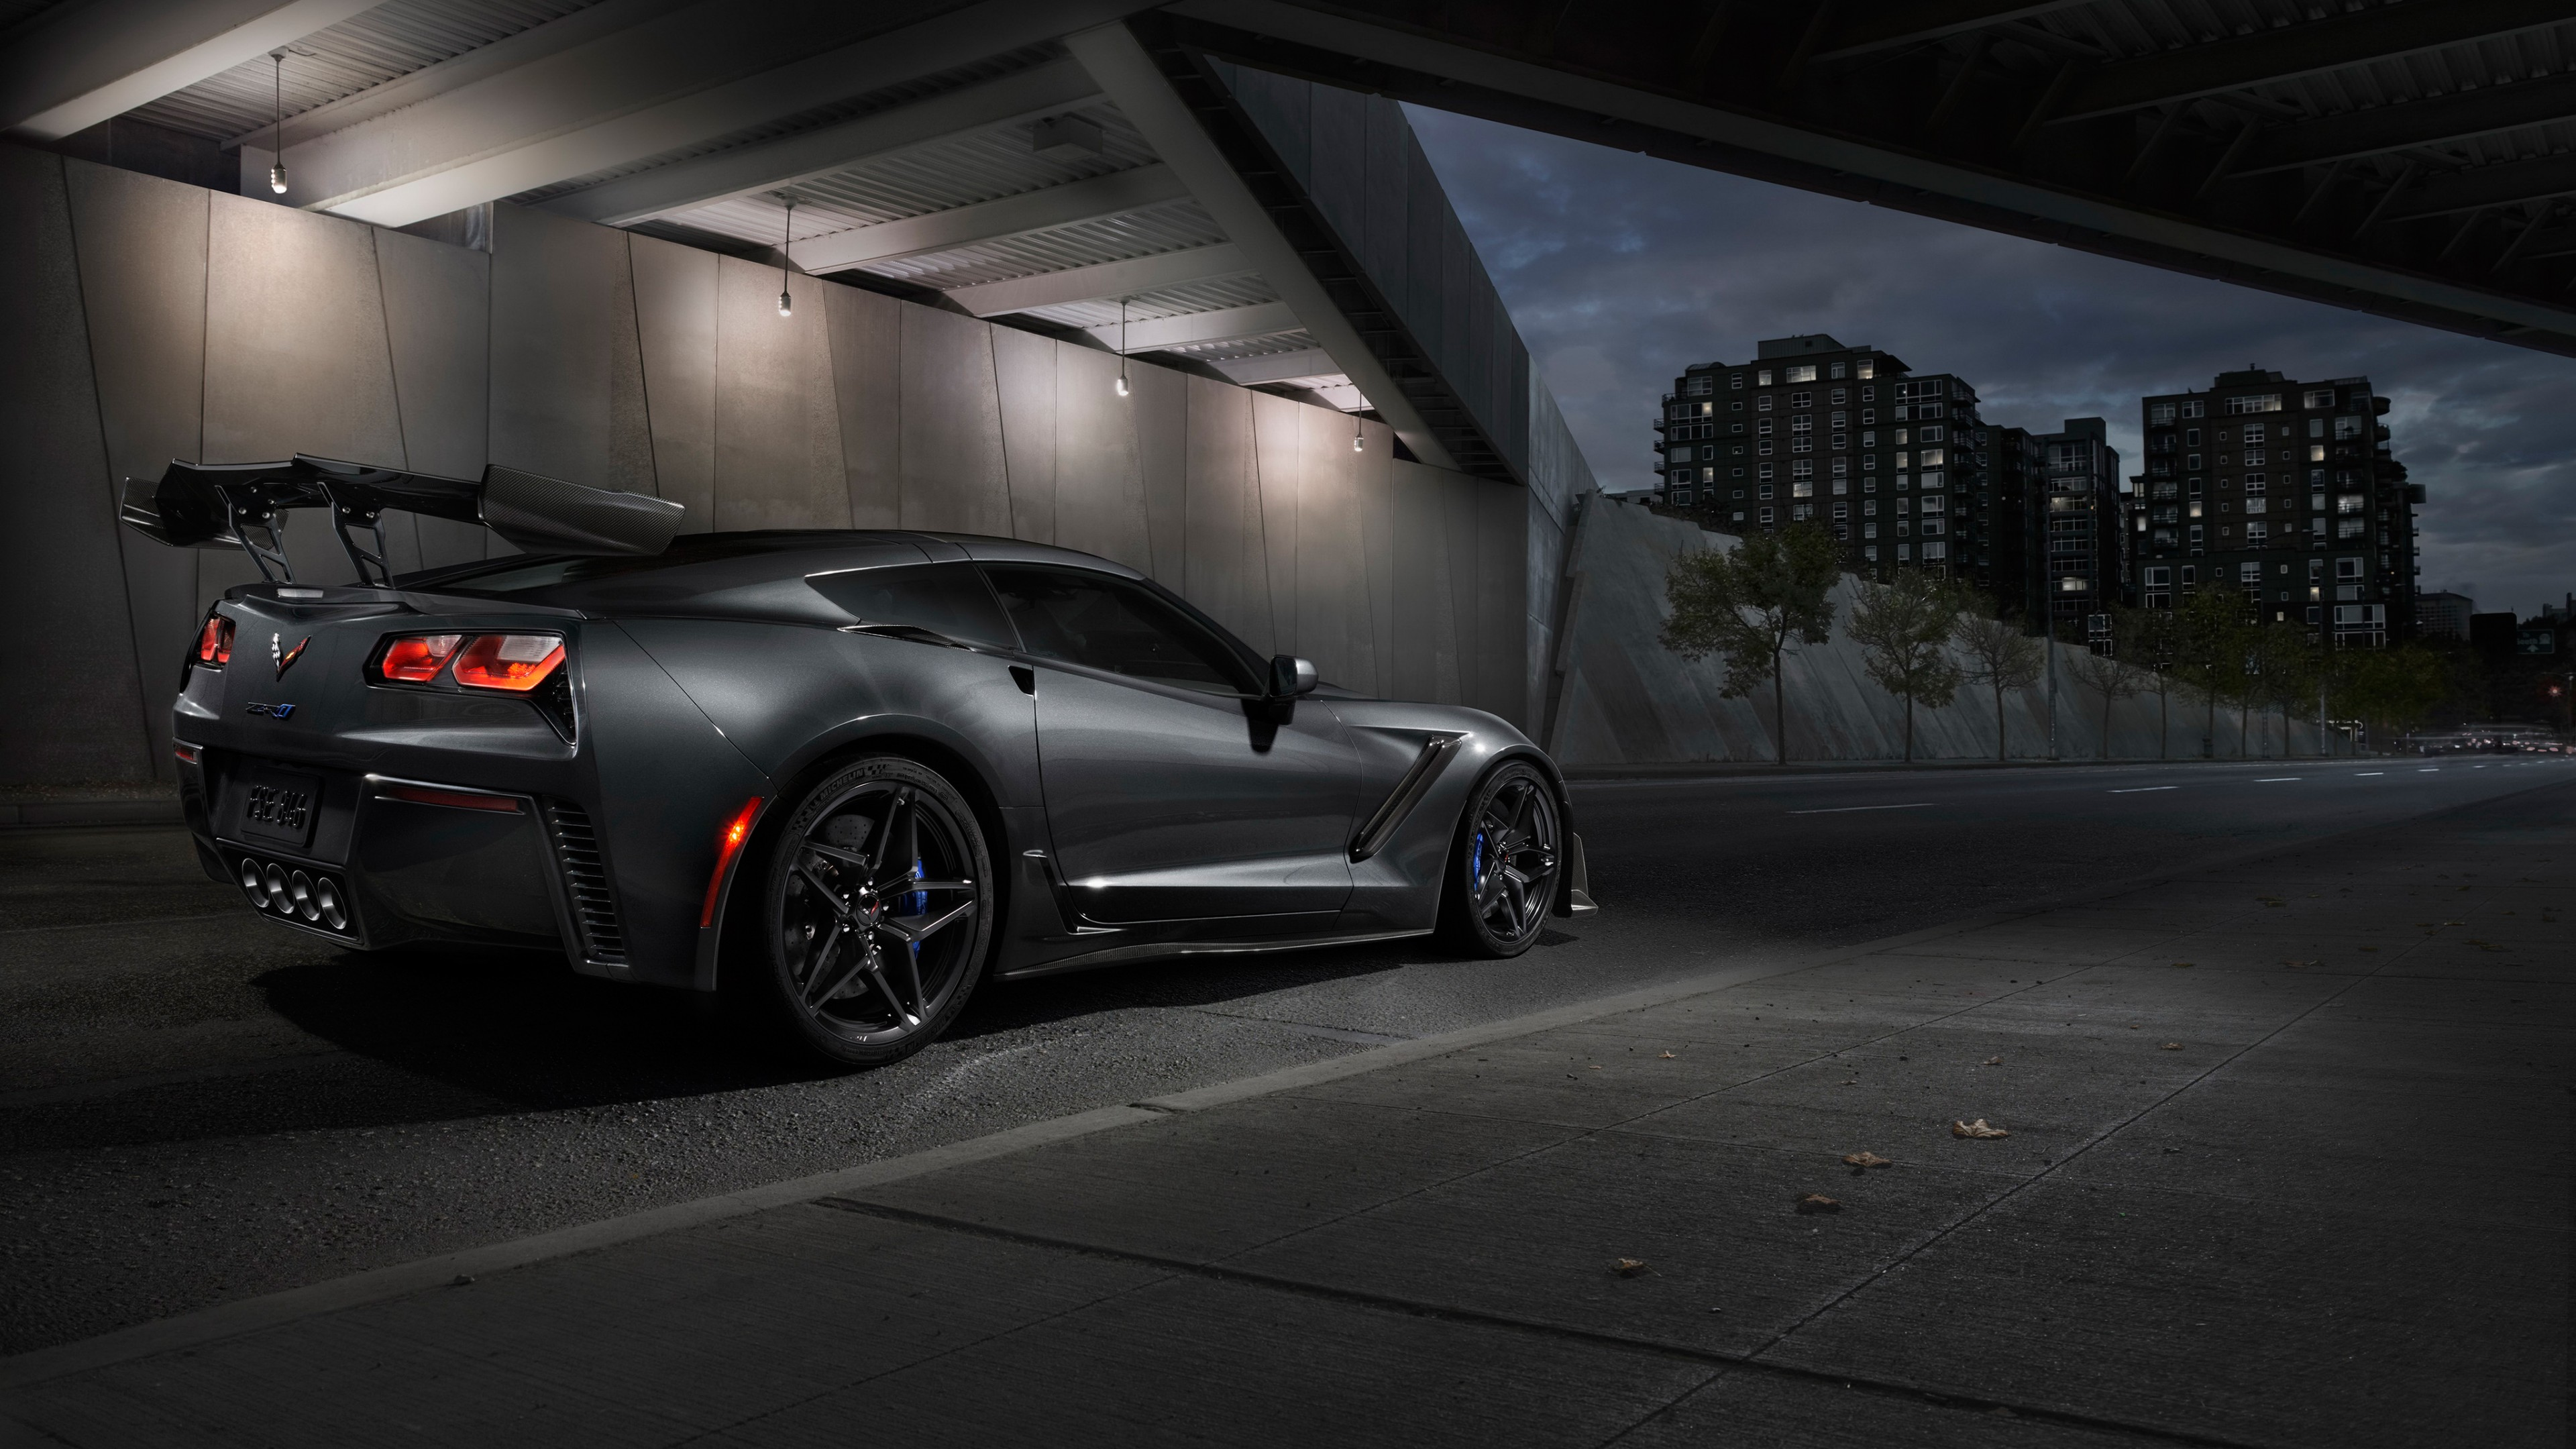 2019 Chevrolet Corvette ZR1 4K 3 Wallpaper | HD Car ...